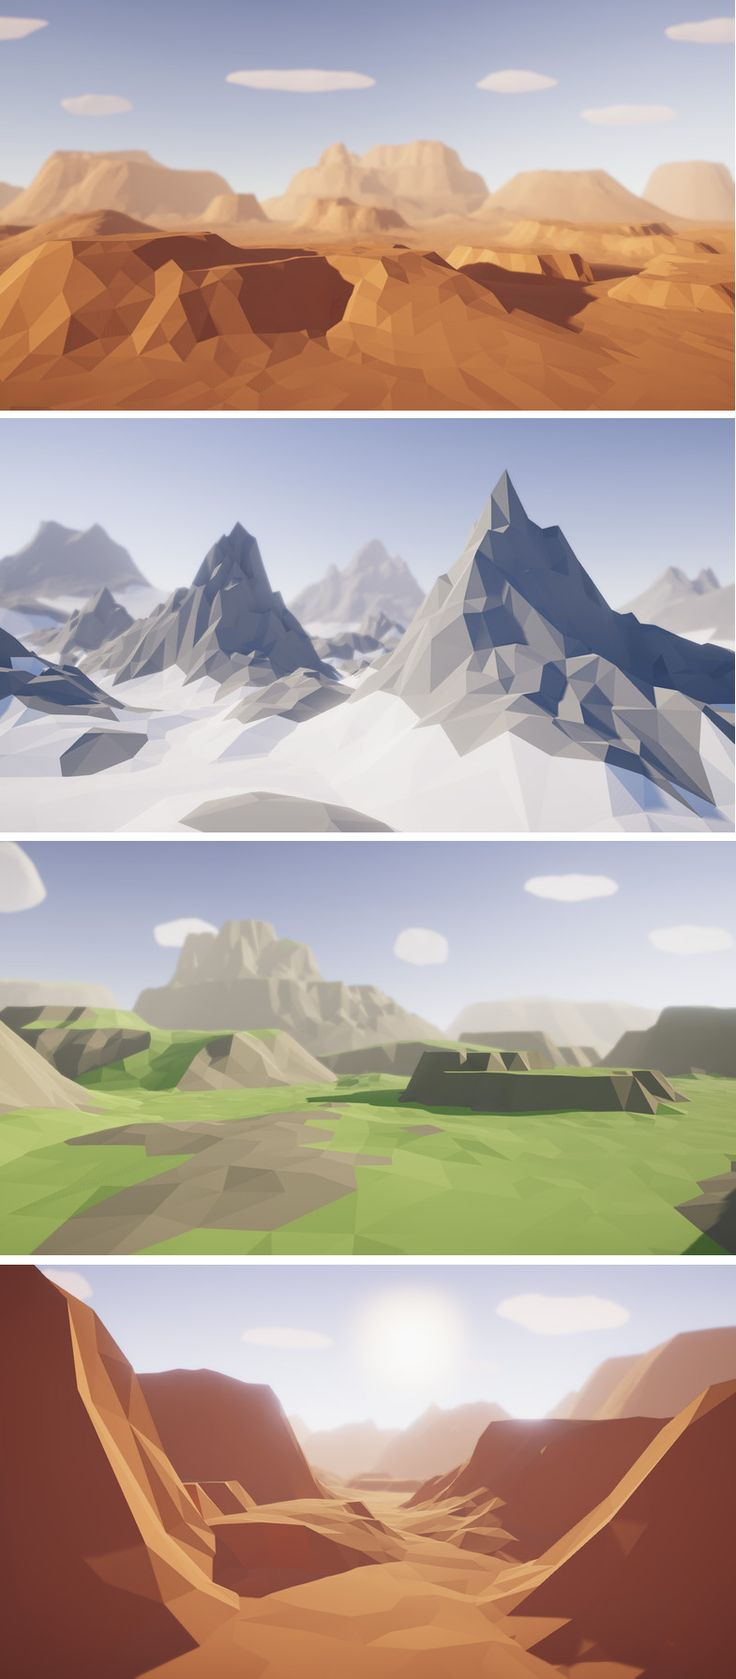 Low Poly Modular Terrain Pack This package contains a huge variety of different modular terrains and mountains ready to use for your game to create unique landscapes. Just drag and drop prefabs to your scene and achieve beautiful results in no time. PC &  https://fb.me/TechnologyStore.mex